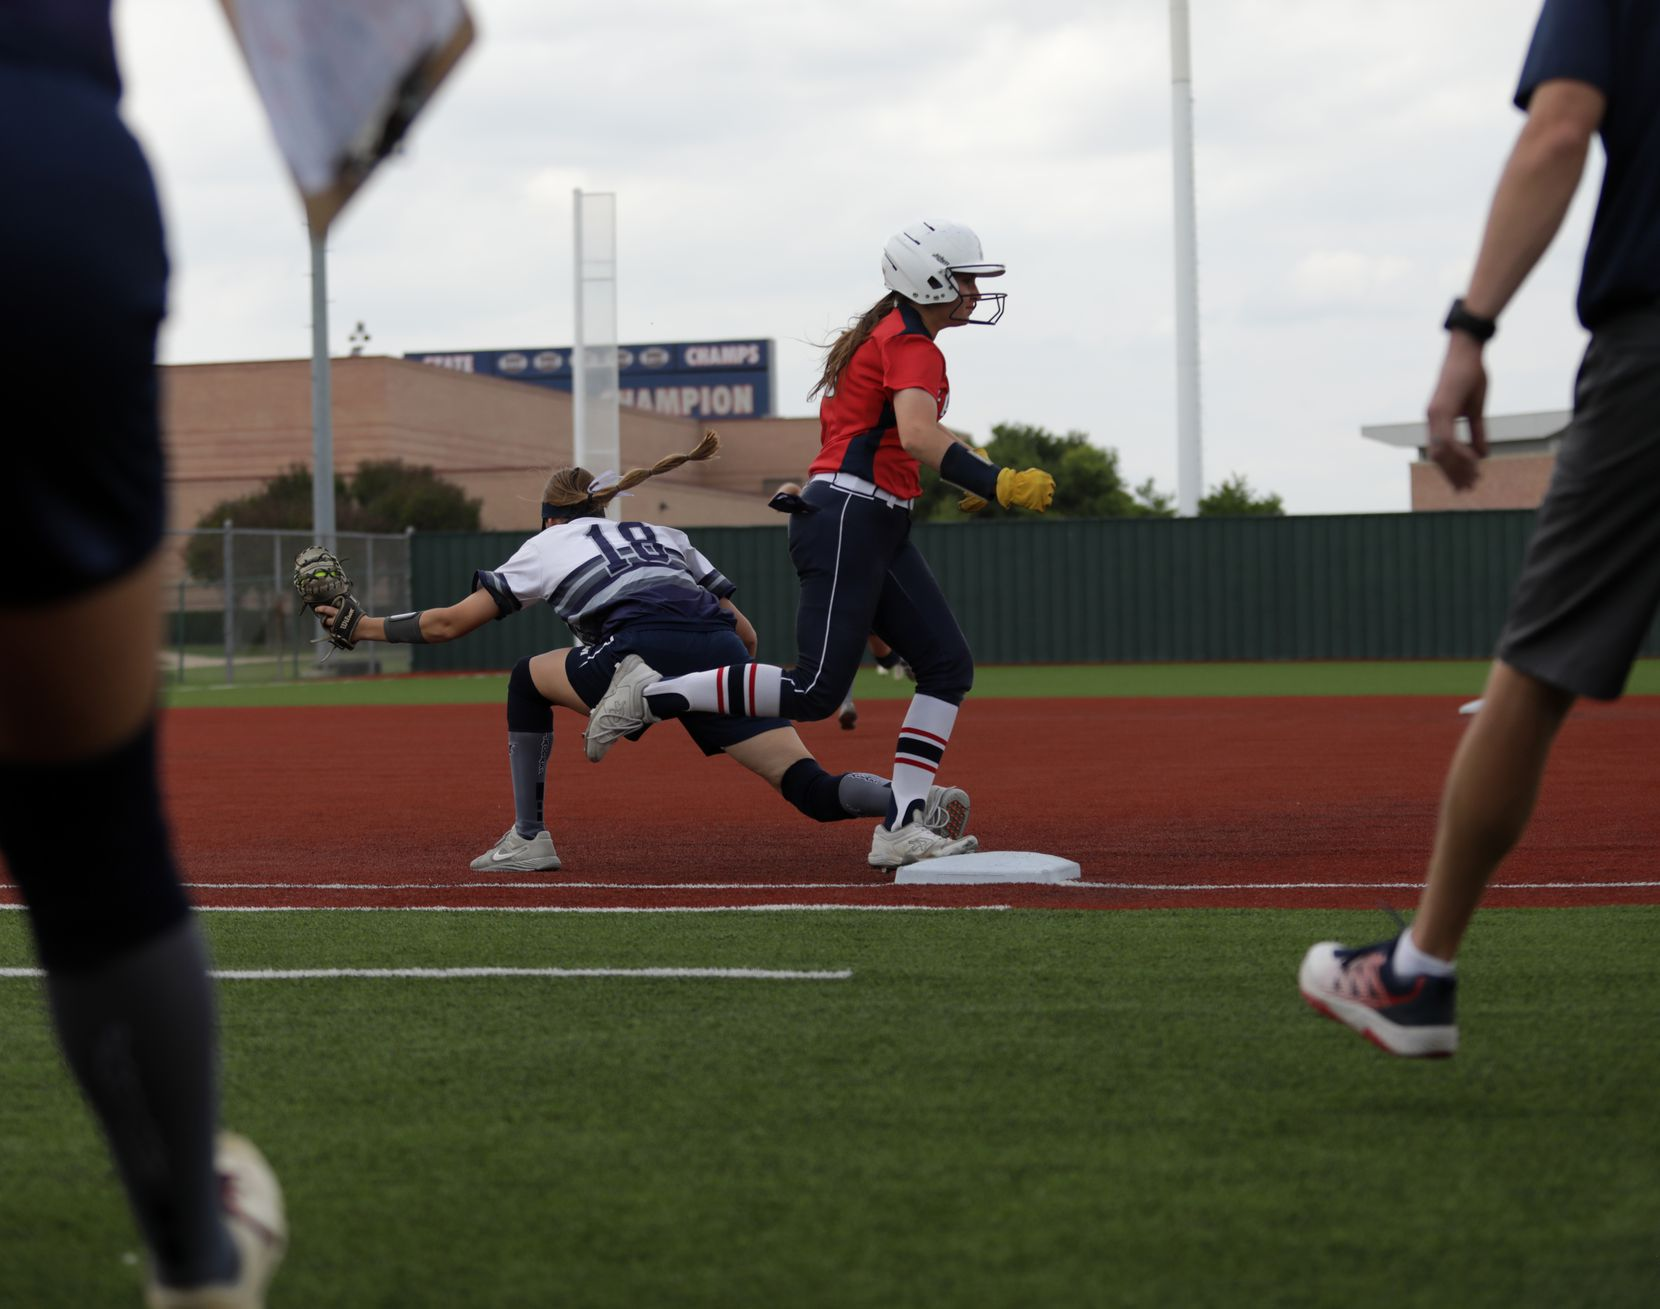 Flower Mound High School player #18, Jordyn Holland, takes out Allen High School player #10, Alexis Telford, during a softball playoff game at Allen High School in Allen, TX, on May 15, 2021. (Jason Janik/Special Contributor)